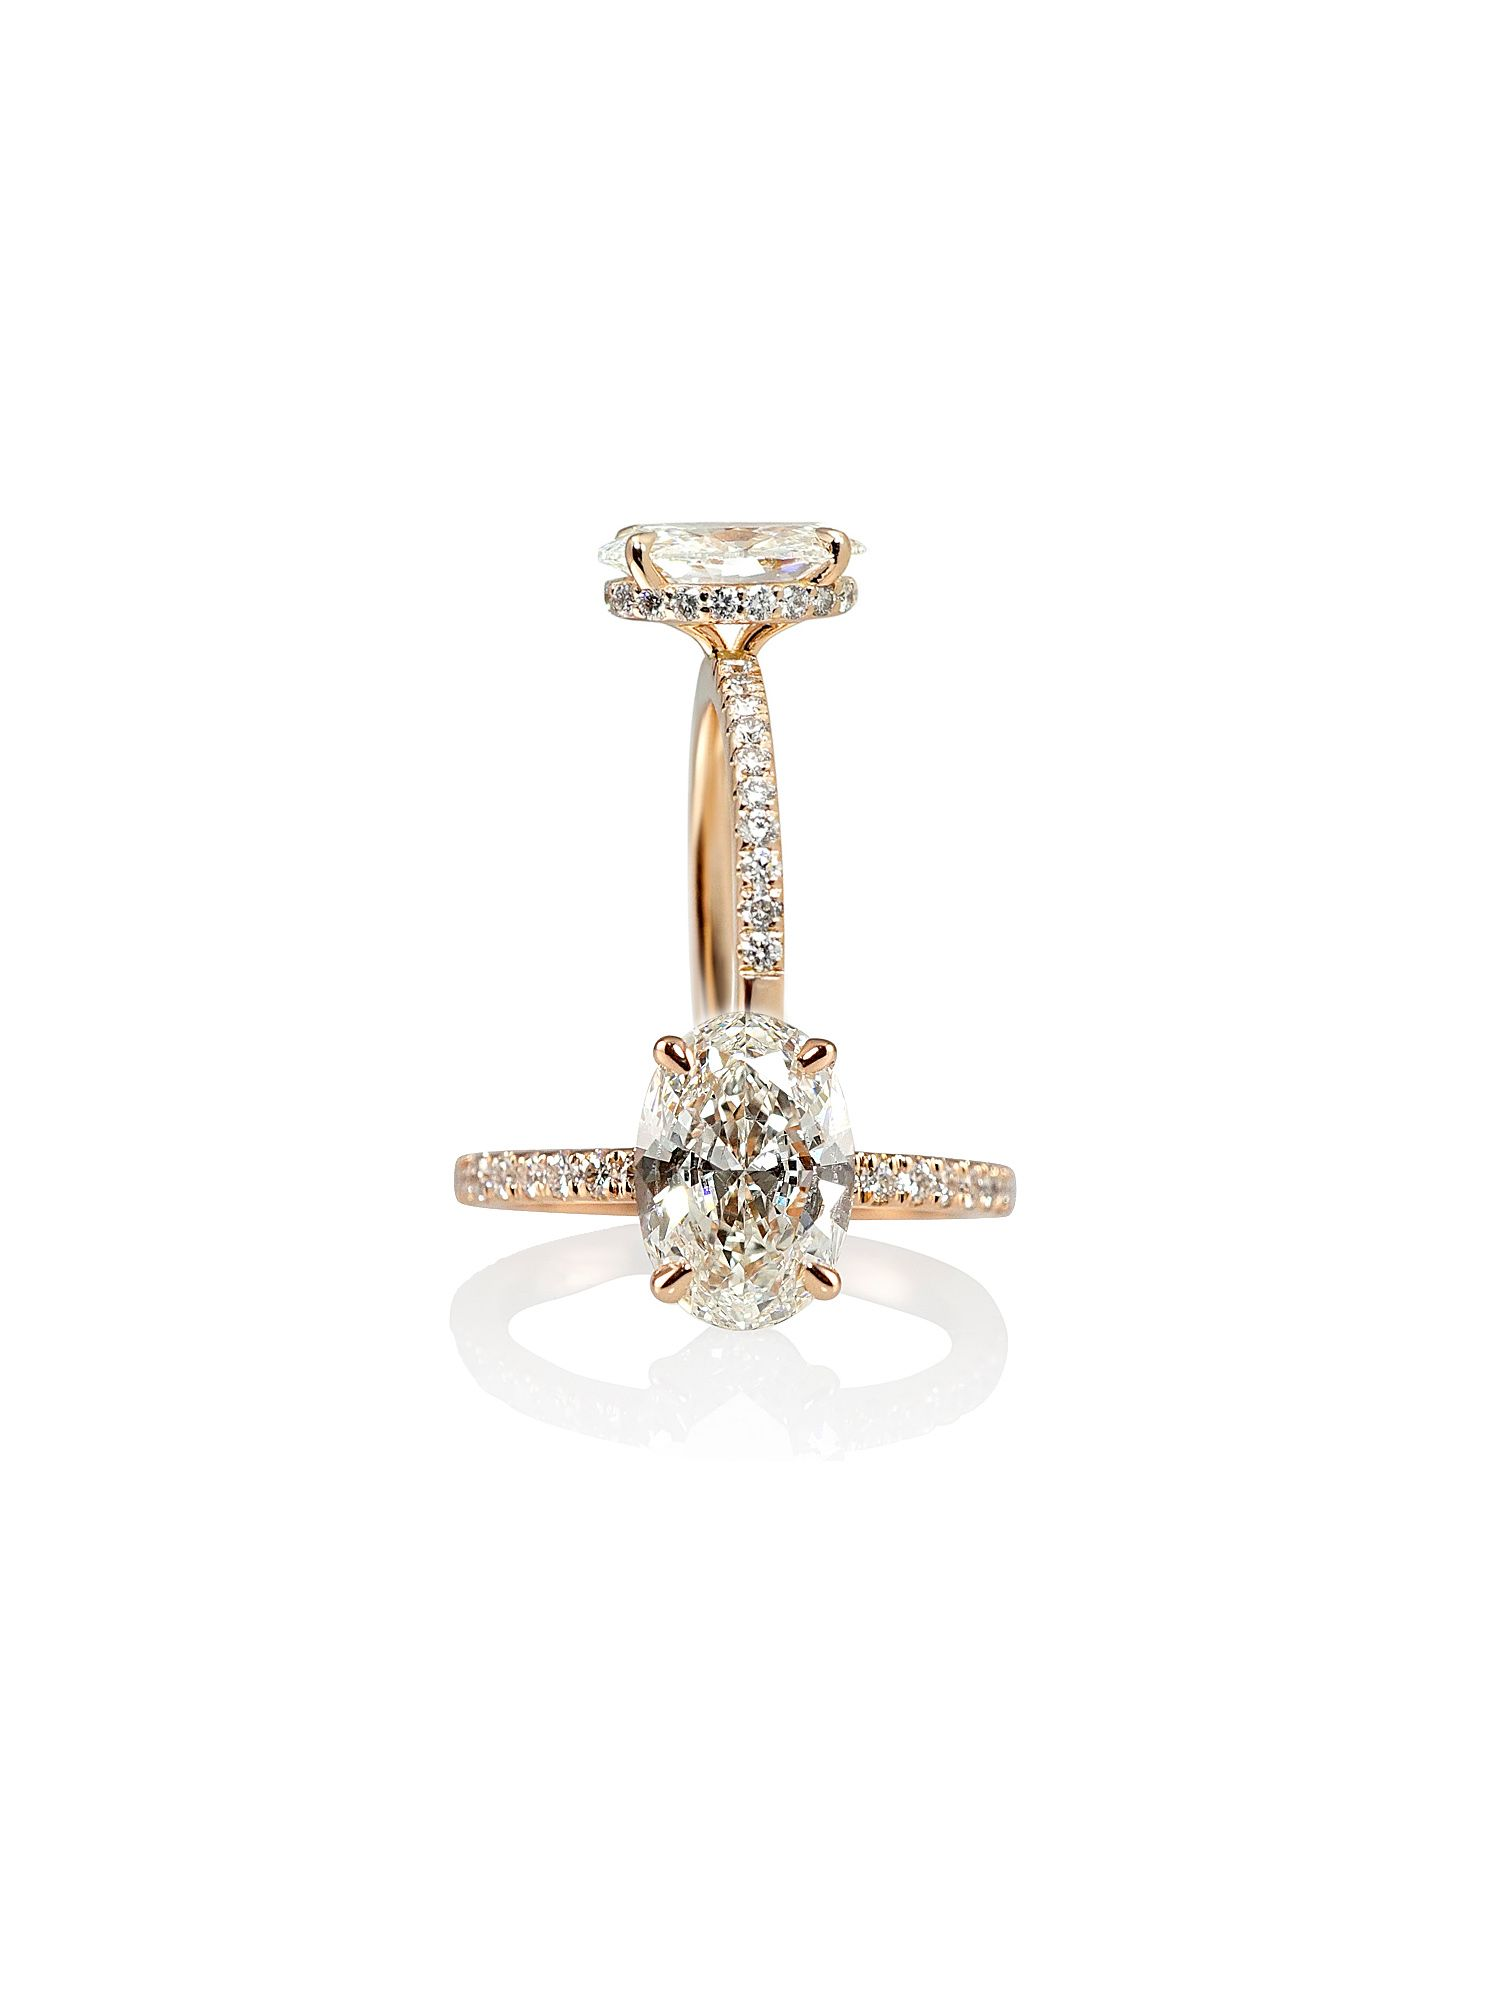 Side View of Amelia Rose Gold and Diamonds Engagment Ring with a Diamond Collar. #ovaldiamond #engagementring